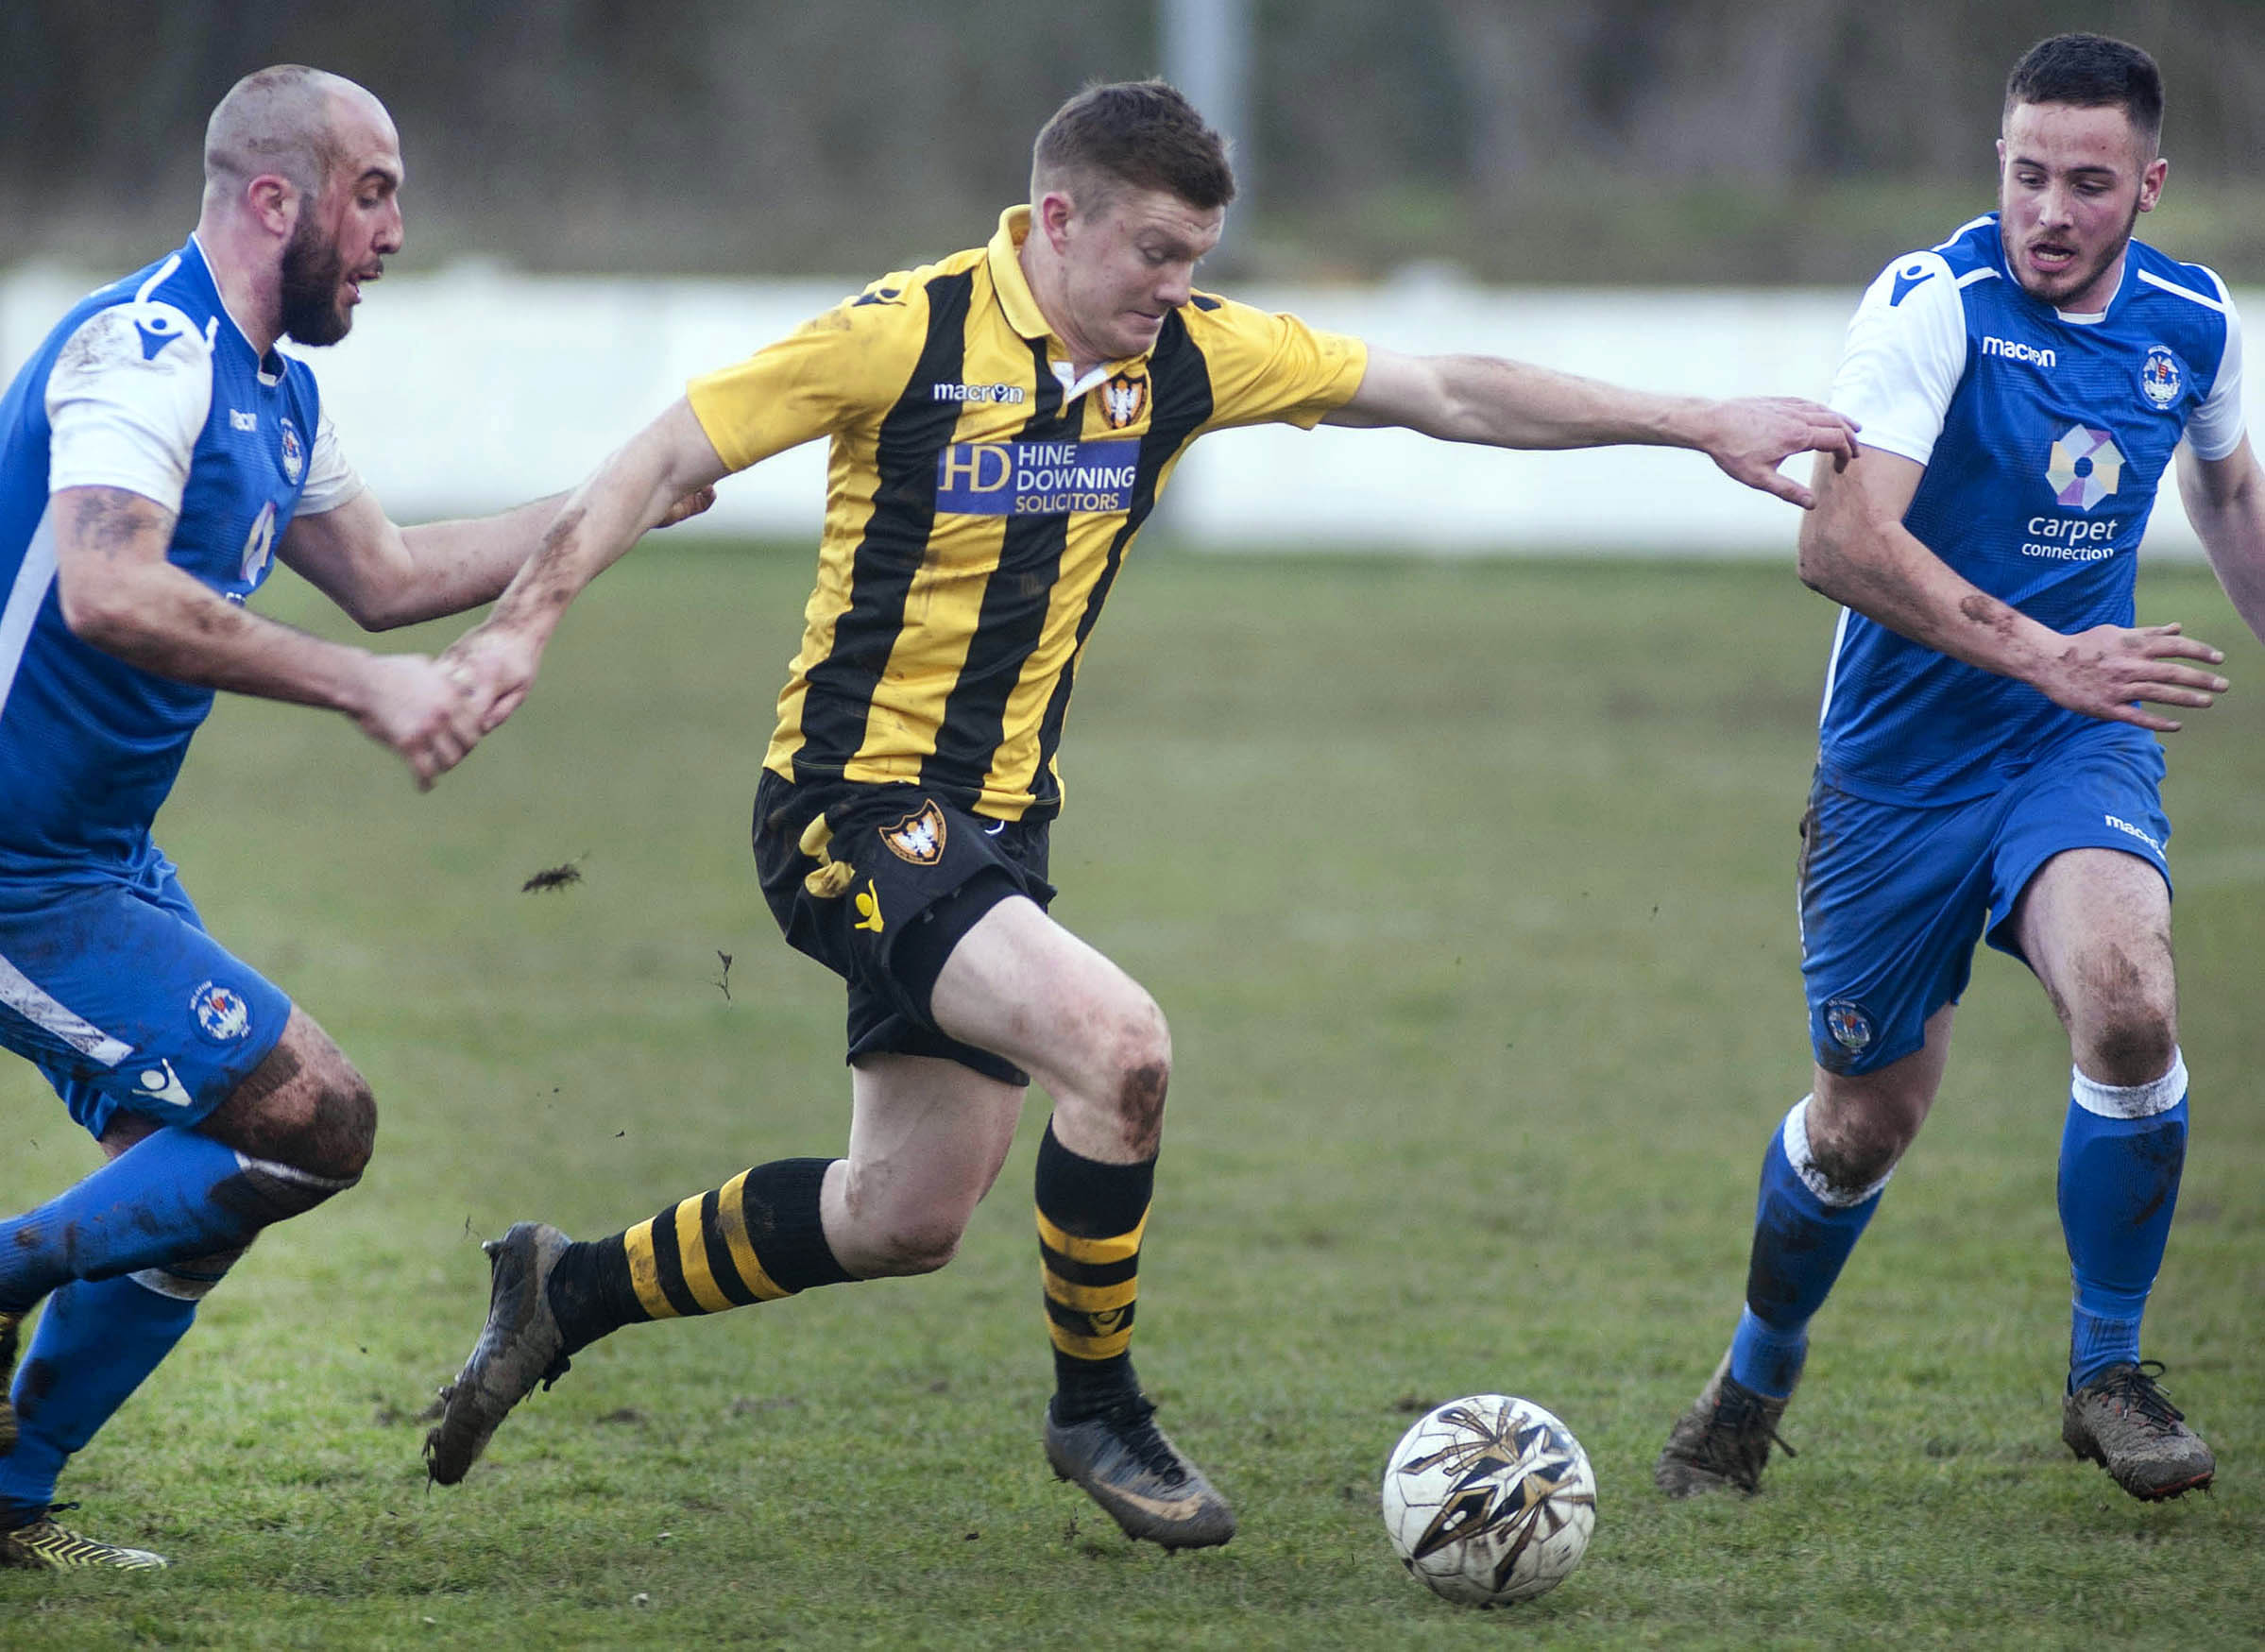 Action from the derby between Falmouth Town and Helston on Saturday